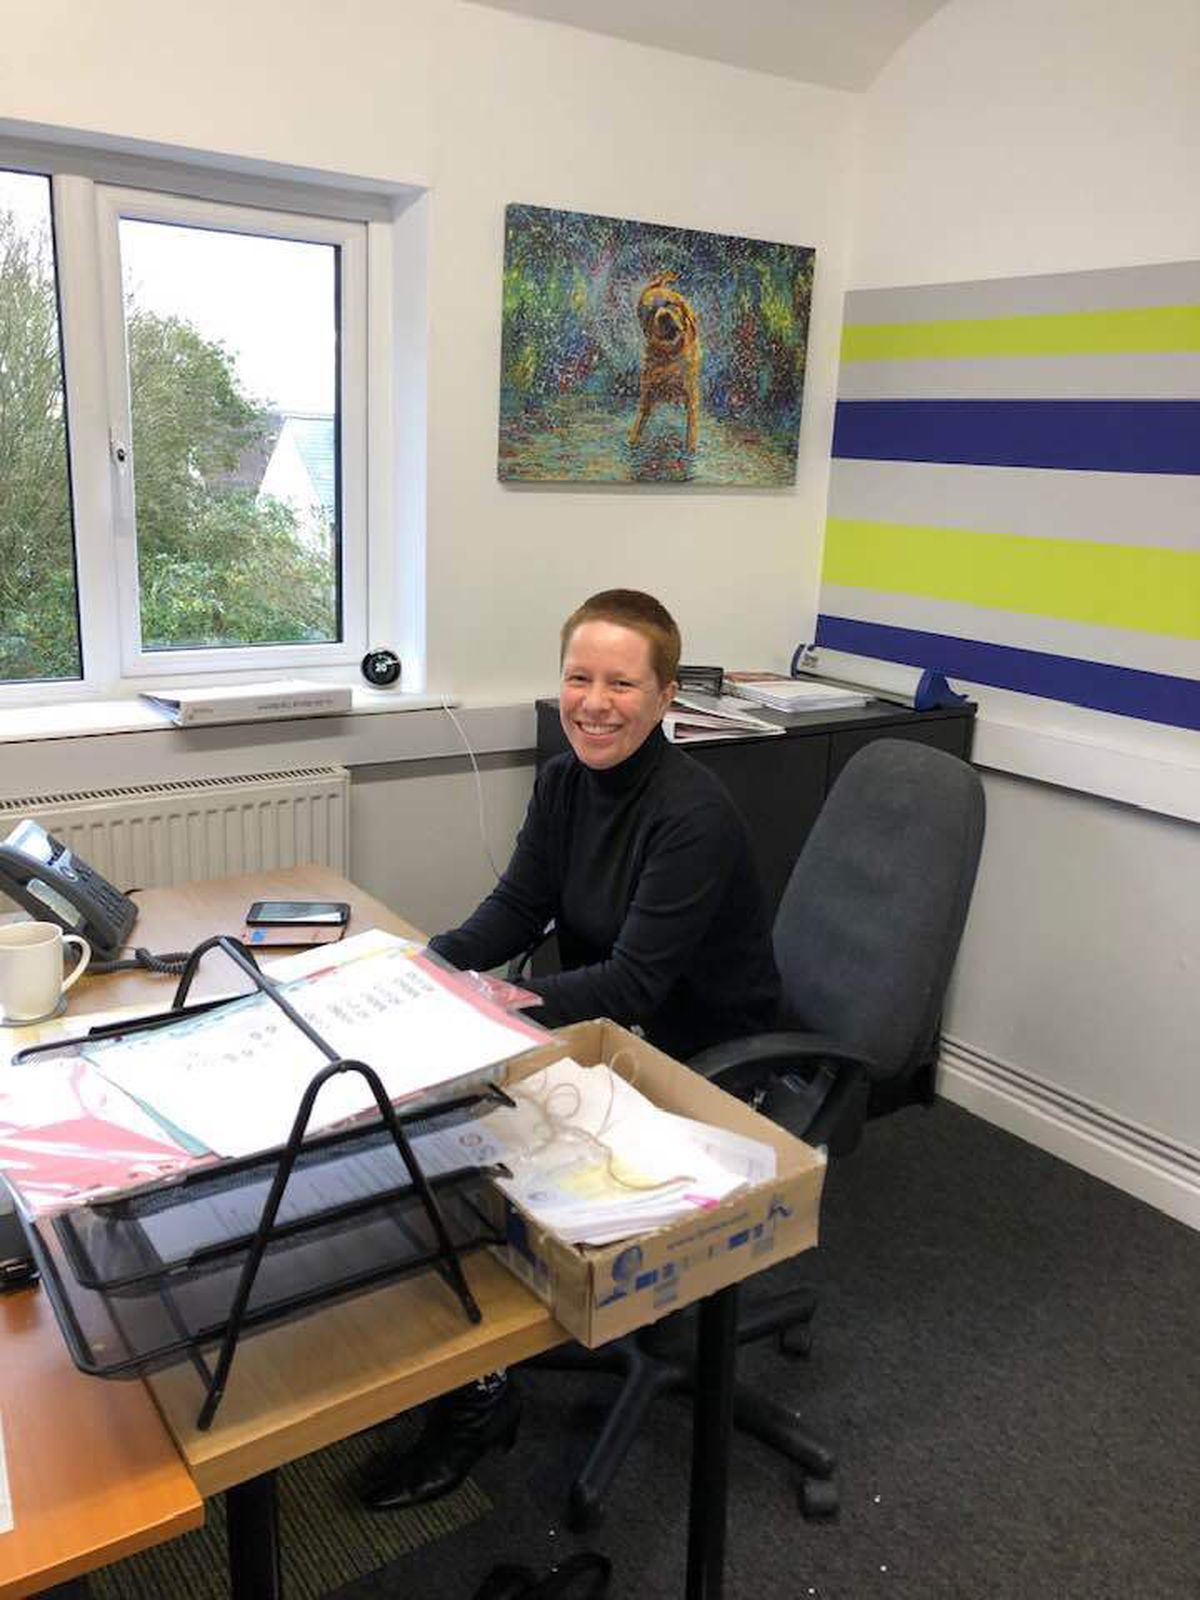 Sam is now working at Lawrence Cleaning Solutions